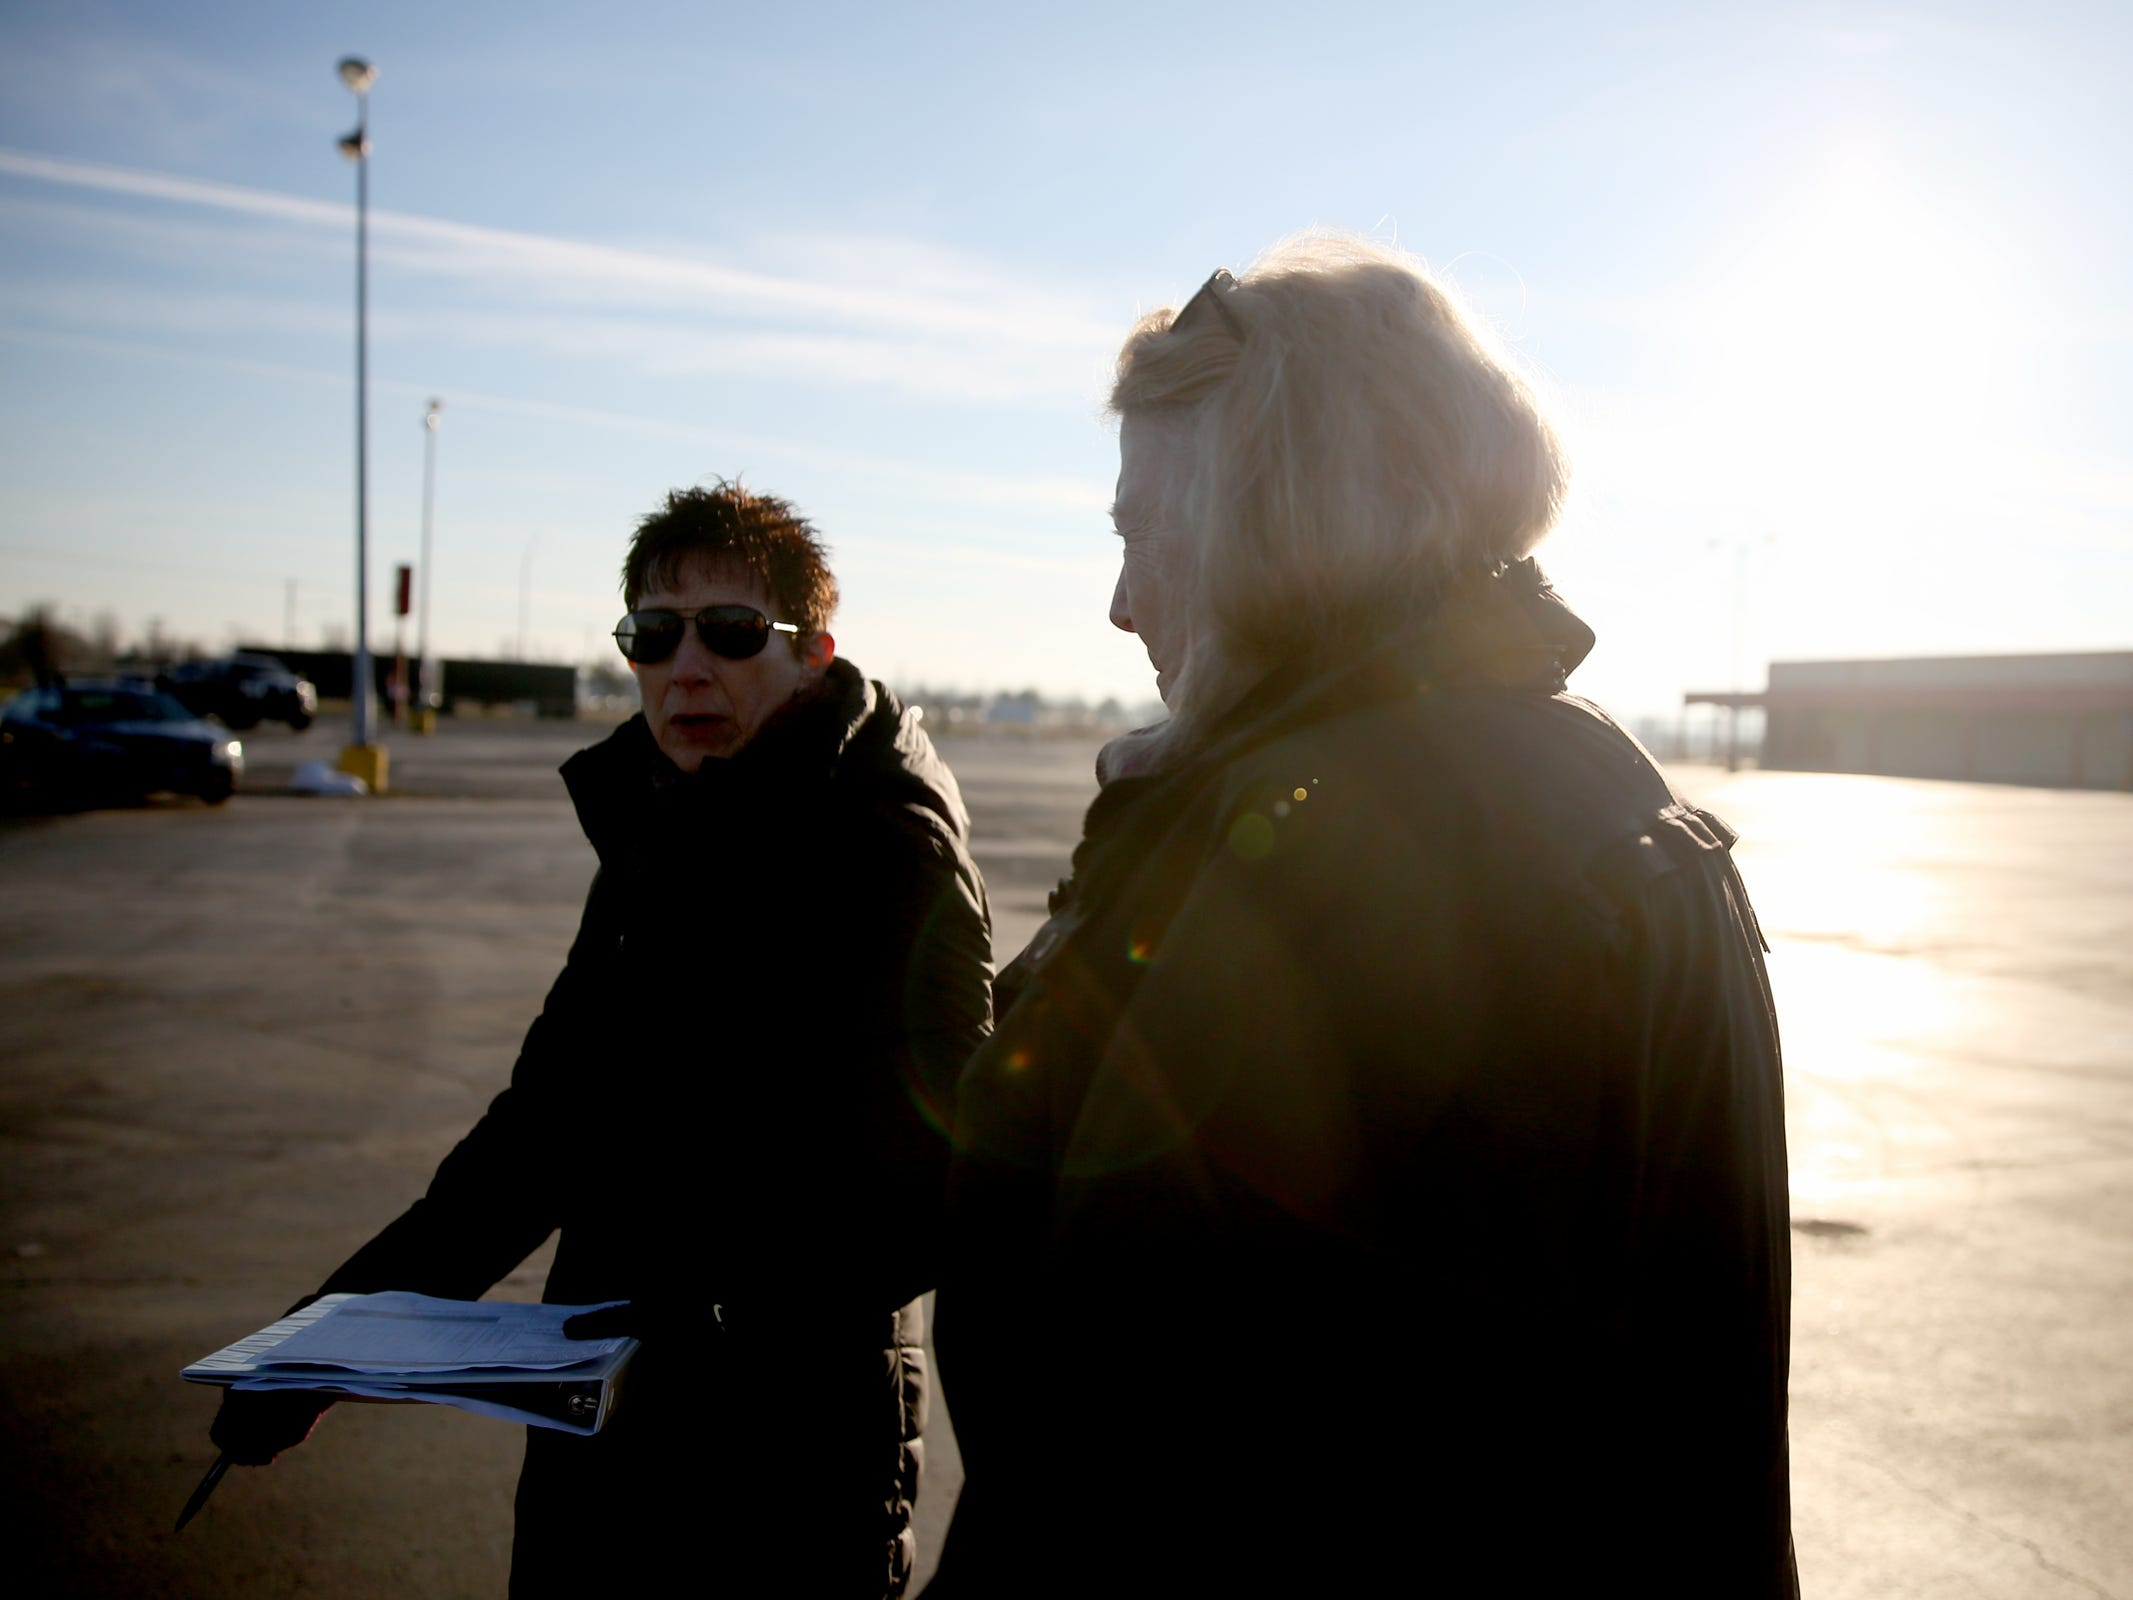 Volunteers Pamella Watson, left, and Lorrie Walker walk through the former Kmart parking lot, looking for people to interview for the annual Point-in-Time homeless count in Salem on Wednesday, Jan. 30, 2019. The number of people counted helps local programs qualify for federal funds to combat homelessness.